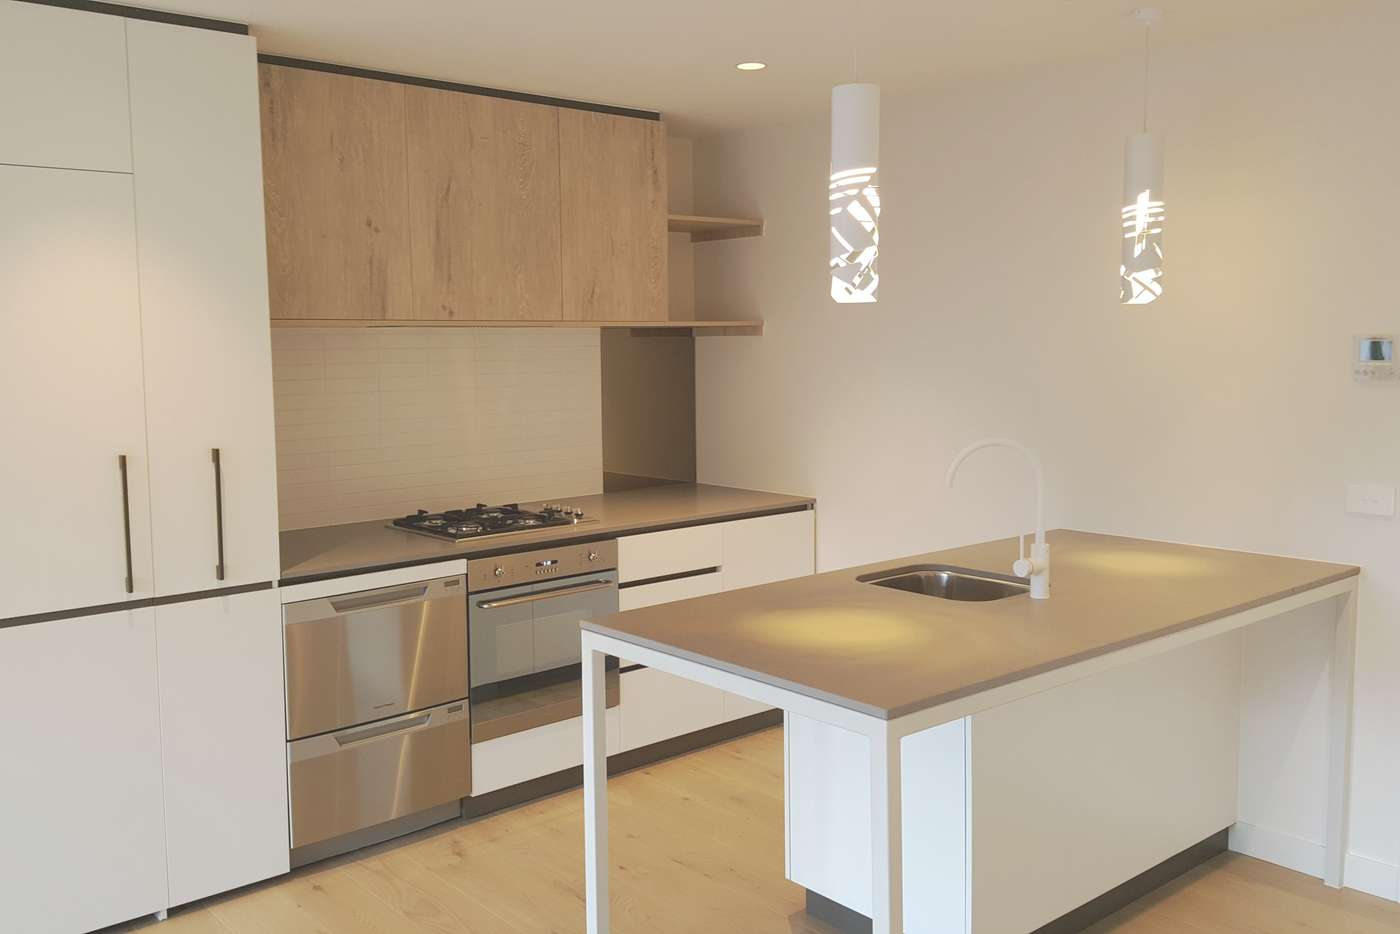 Main view of Homely apartment listing, 105/69 Newry Street, Prahran VIC 3181